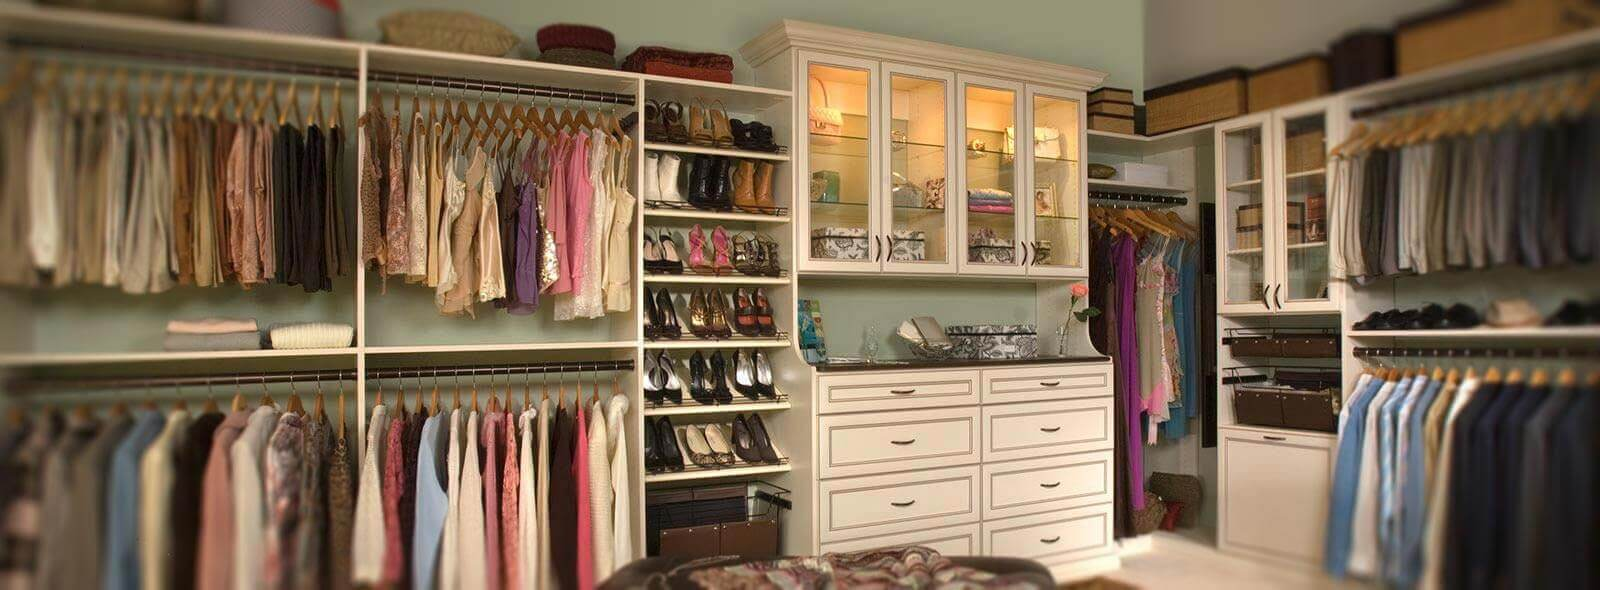 Walk In Custom Closet Antique White South Carolina 1 1